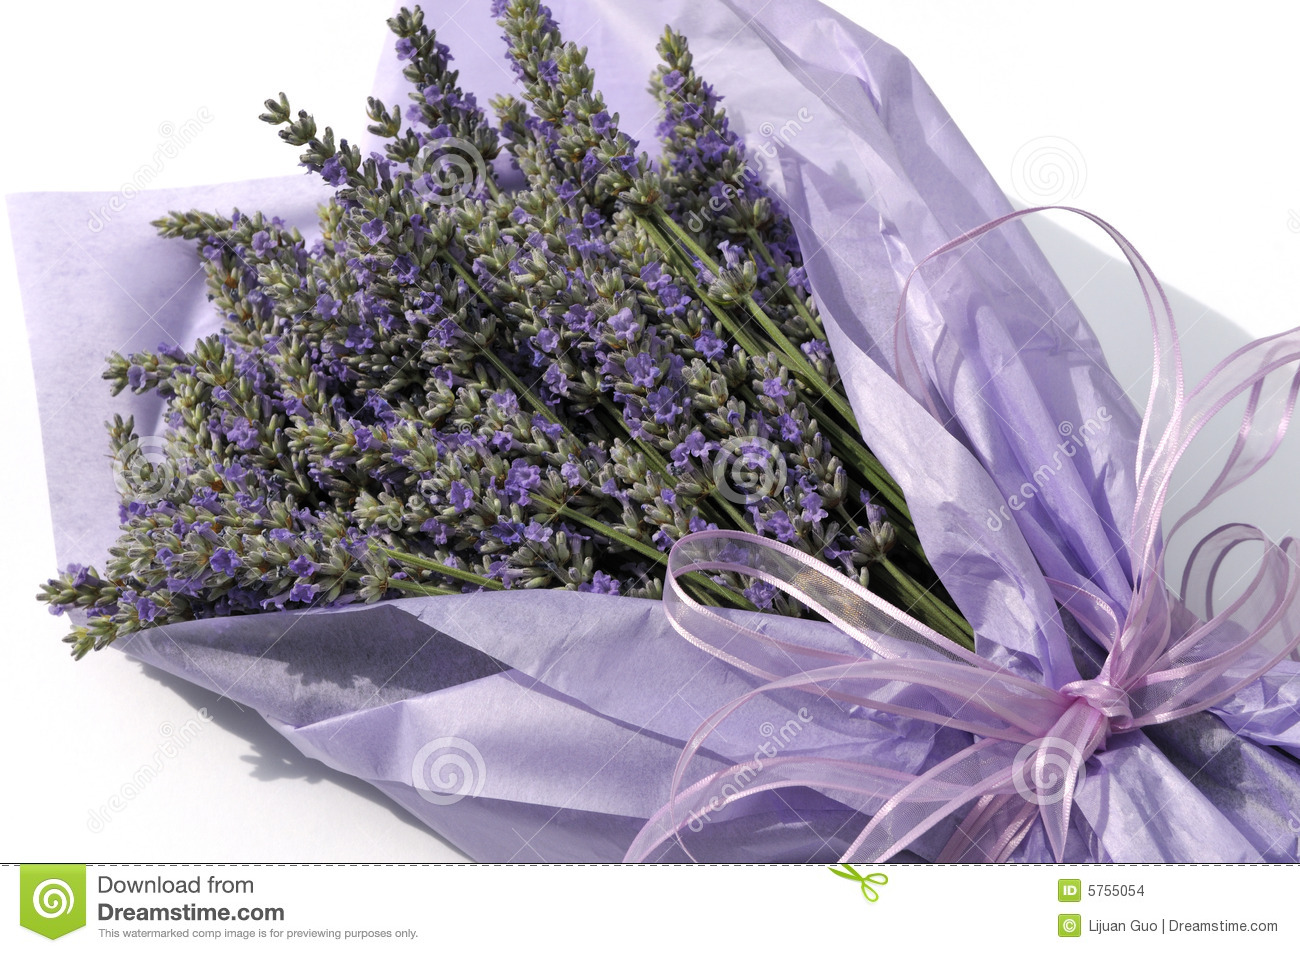 Lavender flower bouquet stock photo. Image of white, lavender - 5755054